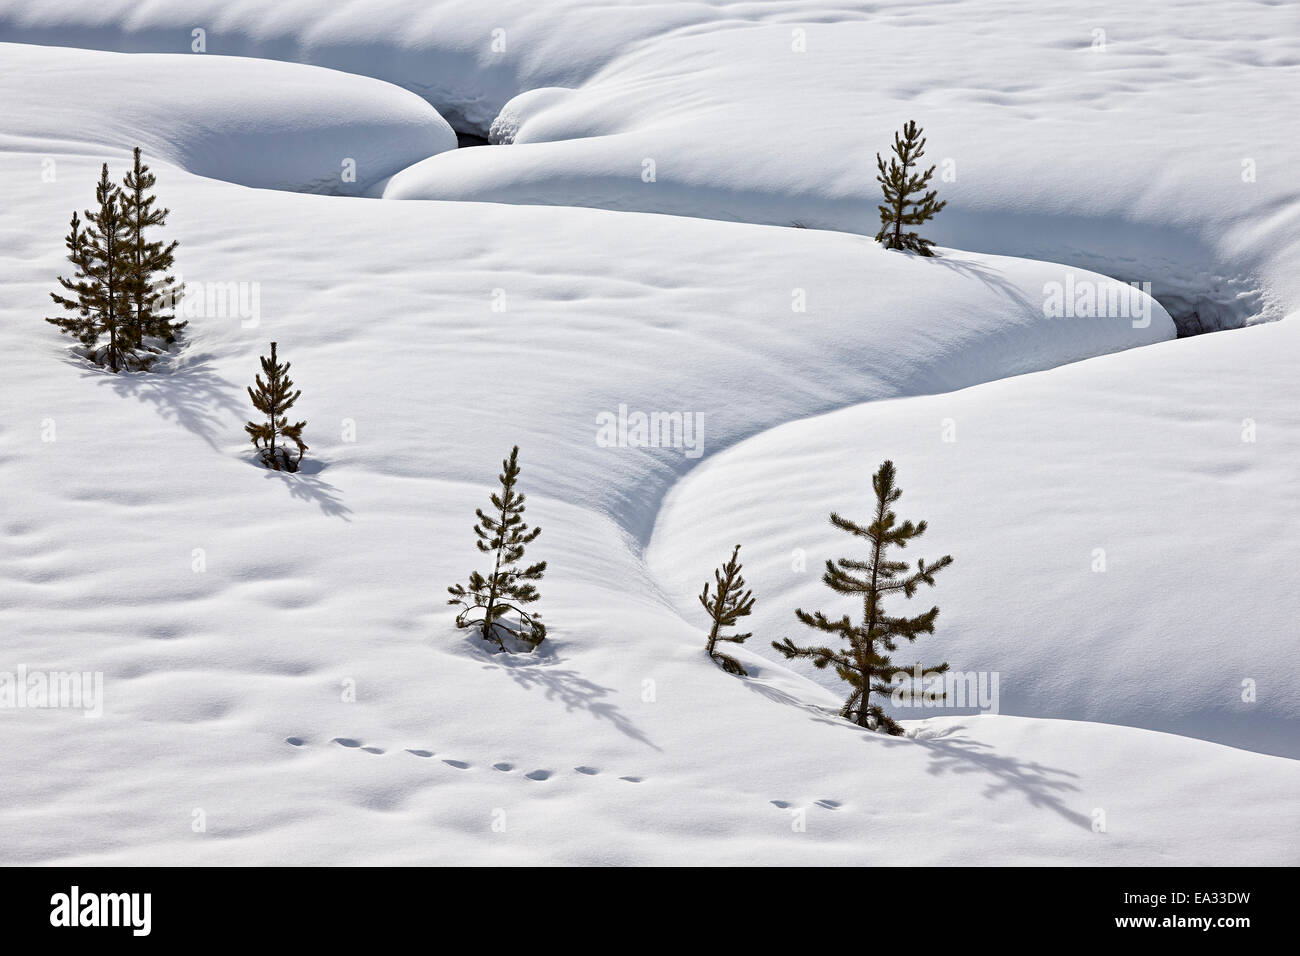 Evergreen trees in the snow with a meandering stream, Grand Teton National Park, Wyoming, USA - Stock Image